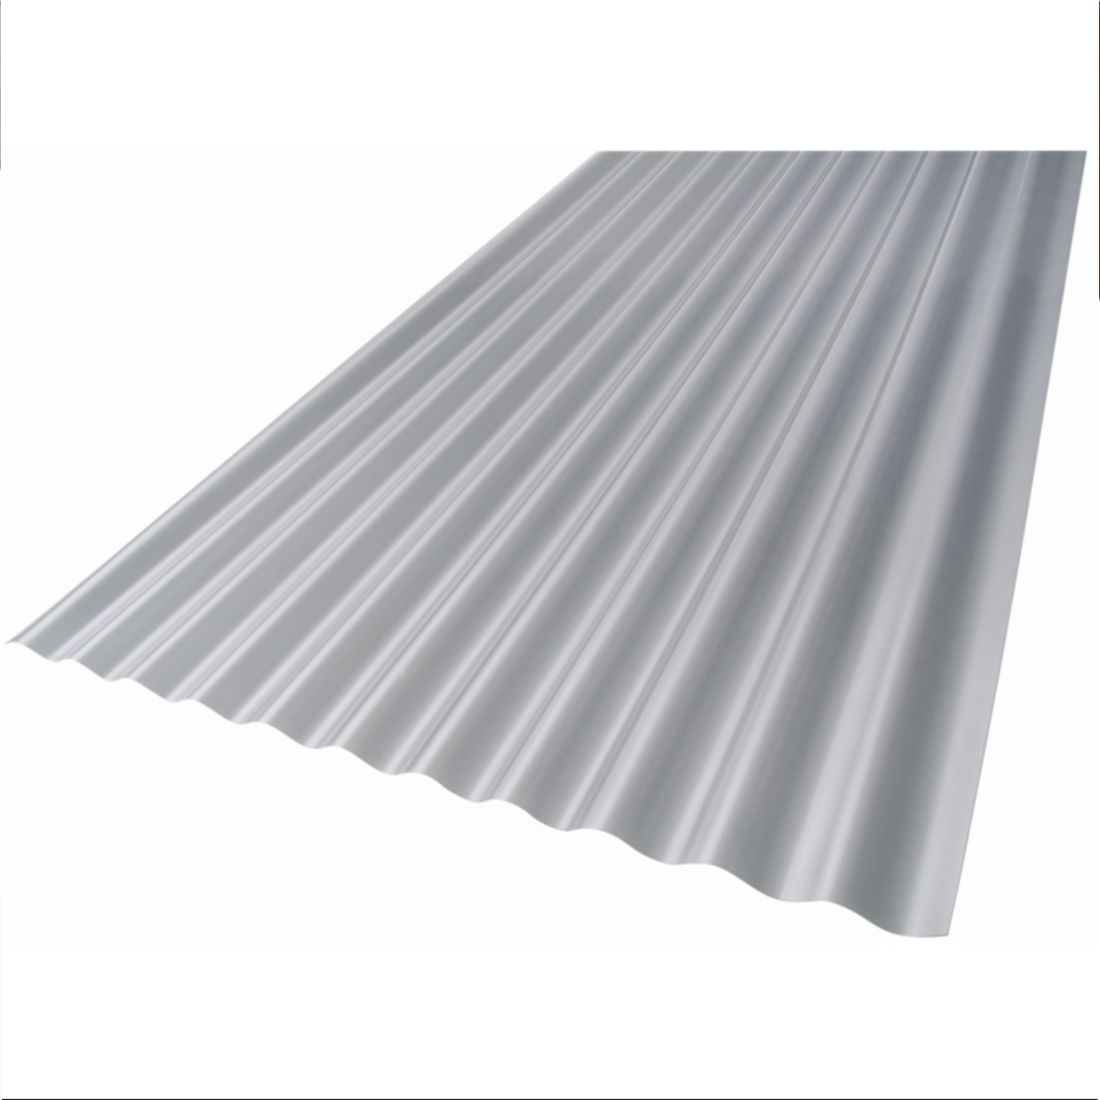 CoolTech Corrugated Grey 1800 x 860mm